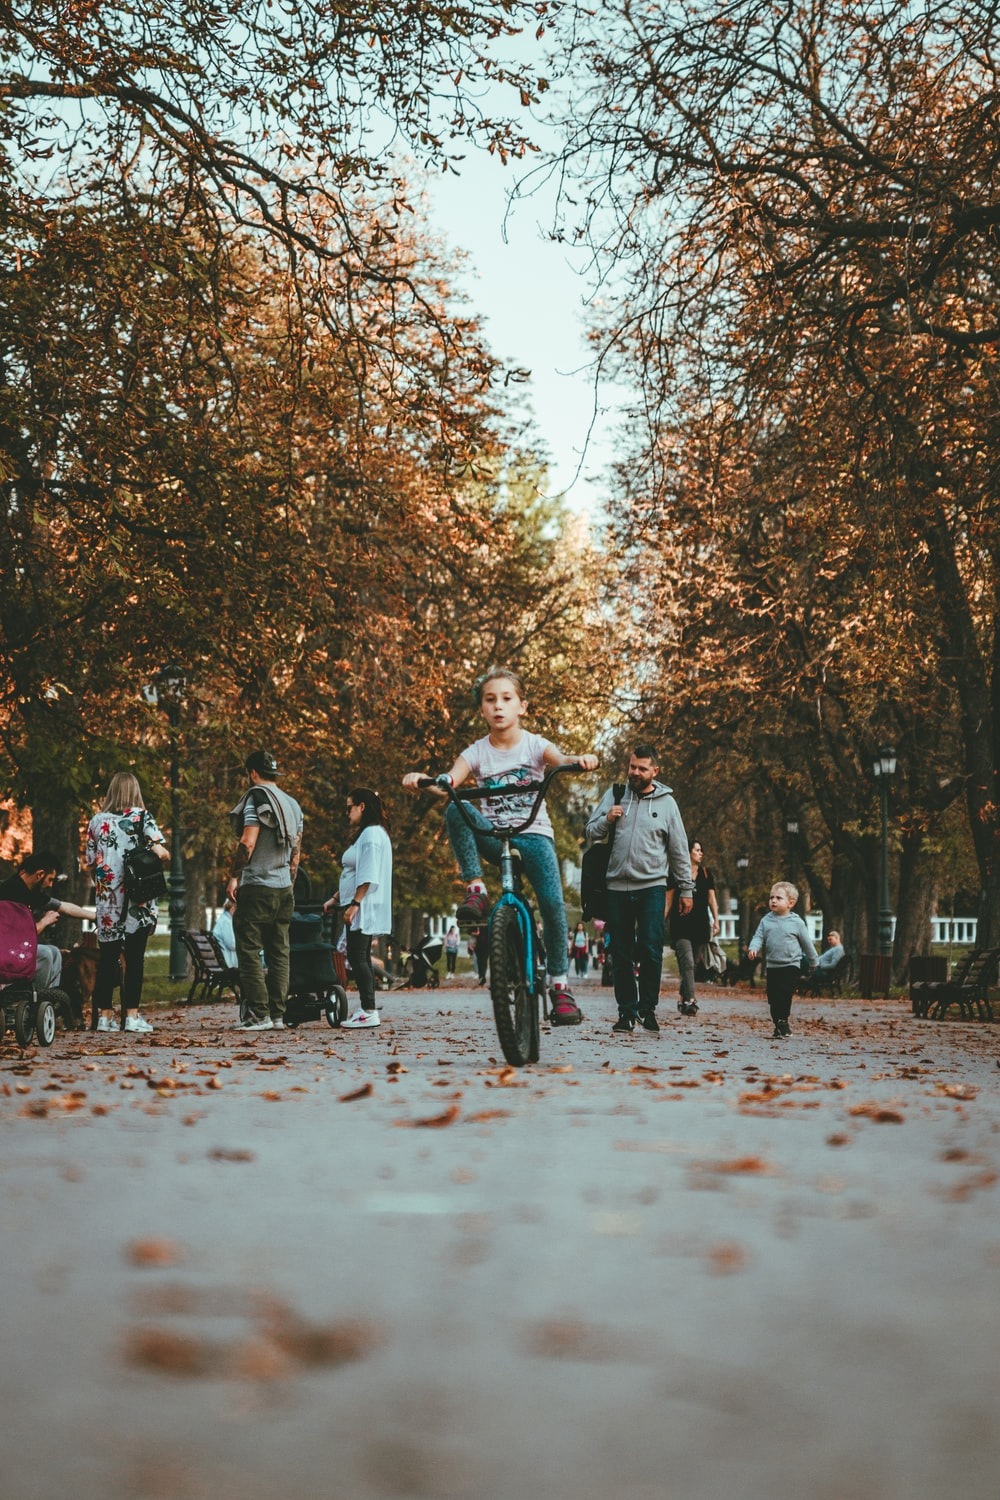 girl riding bicycle on pathway surrounded by people